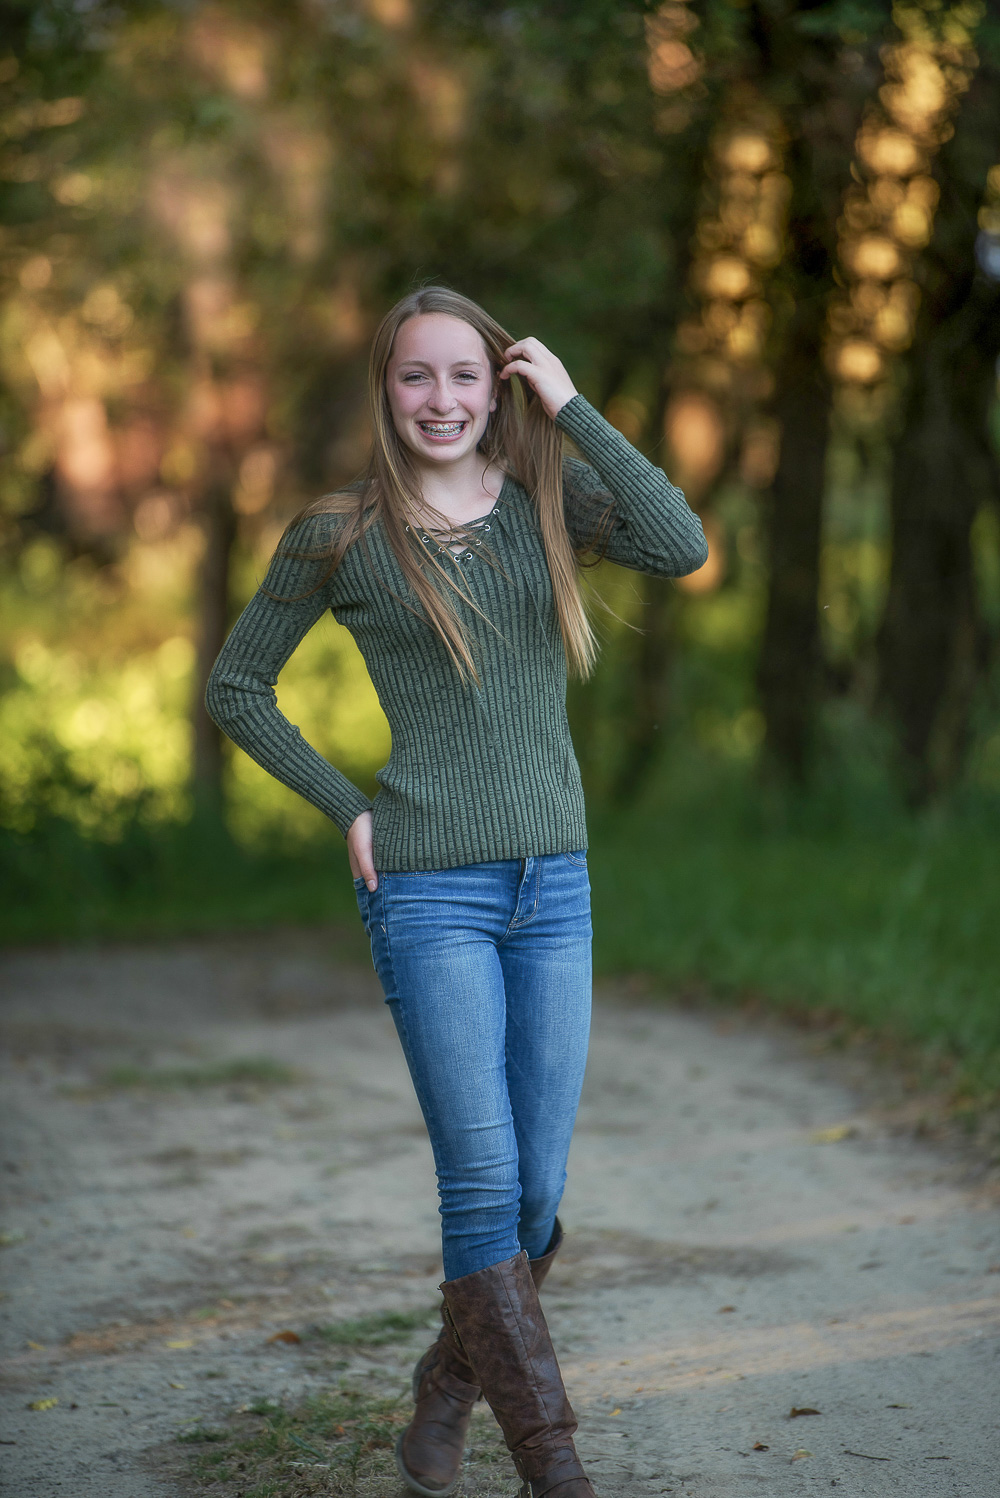 Parky'sPicsPhotog8thGradeSession8.jpg